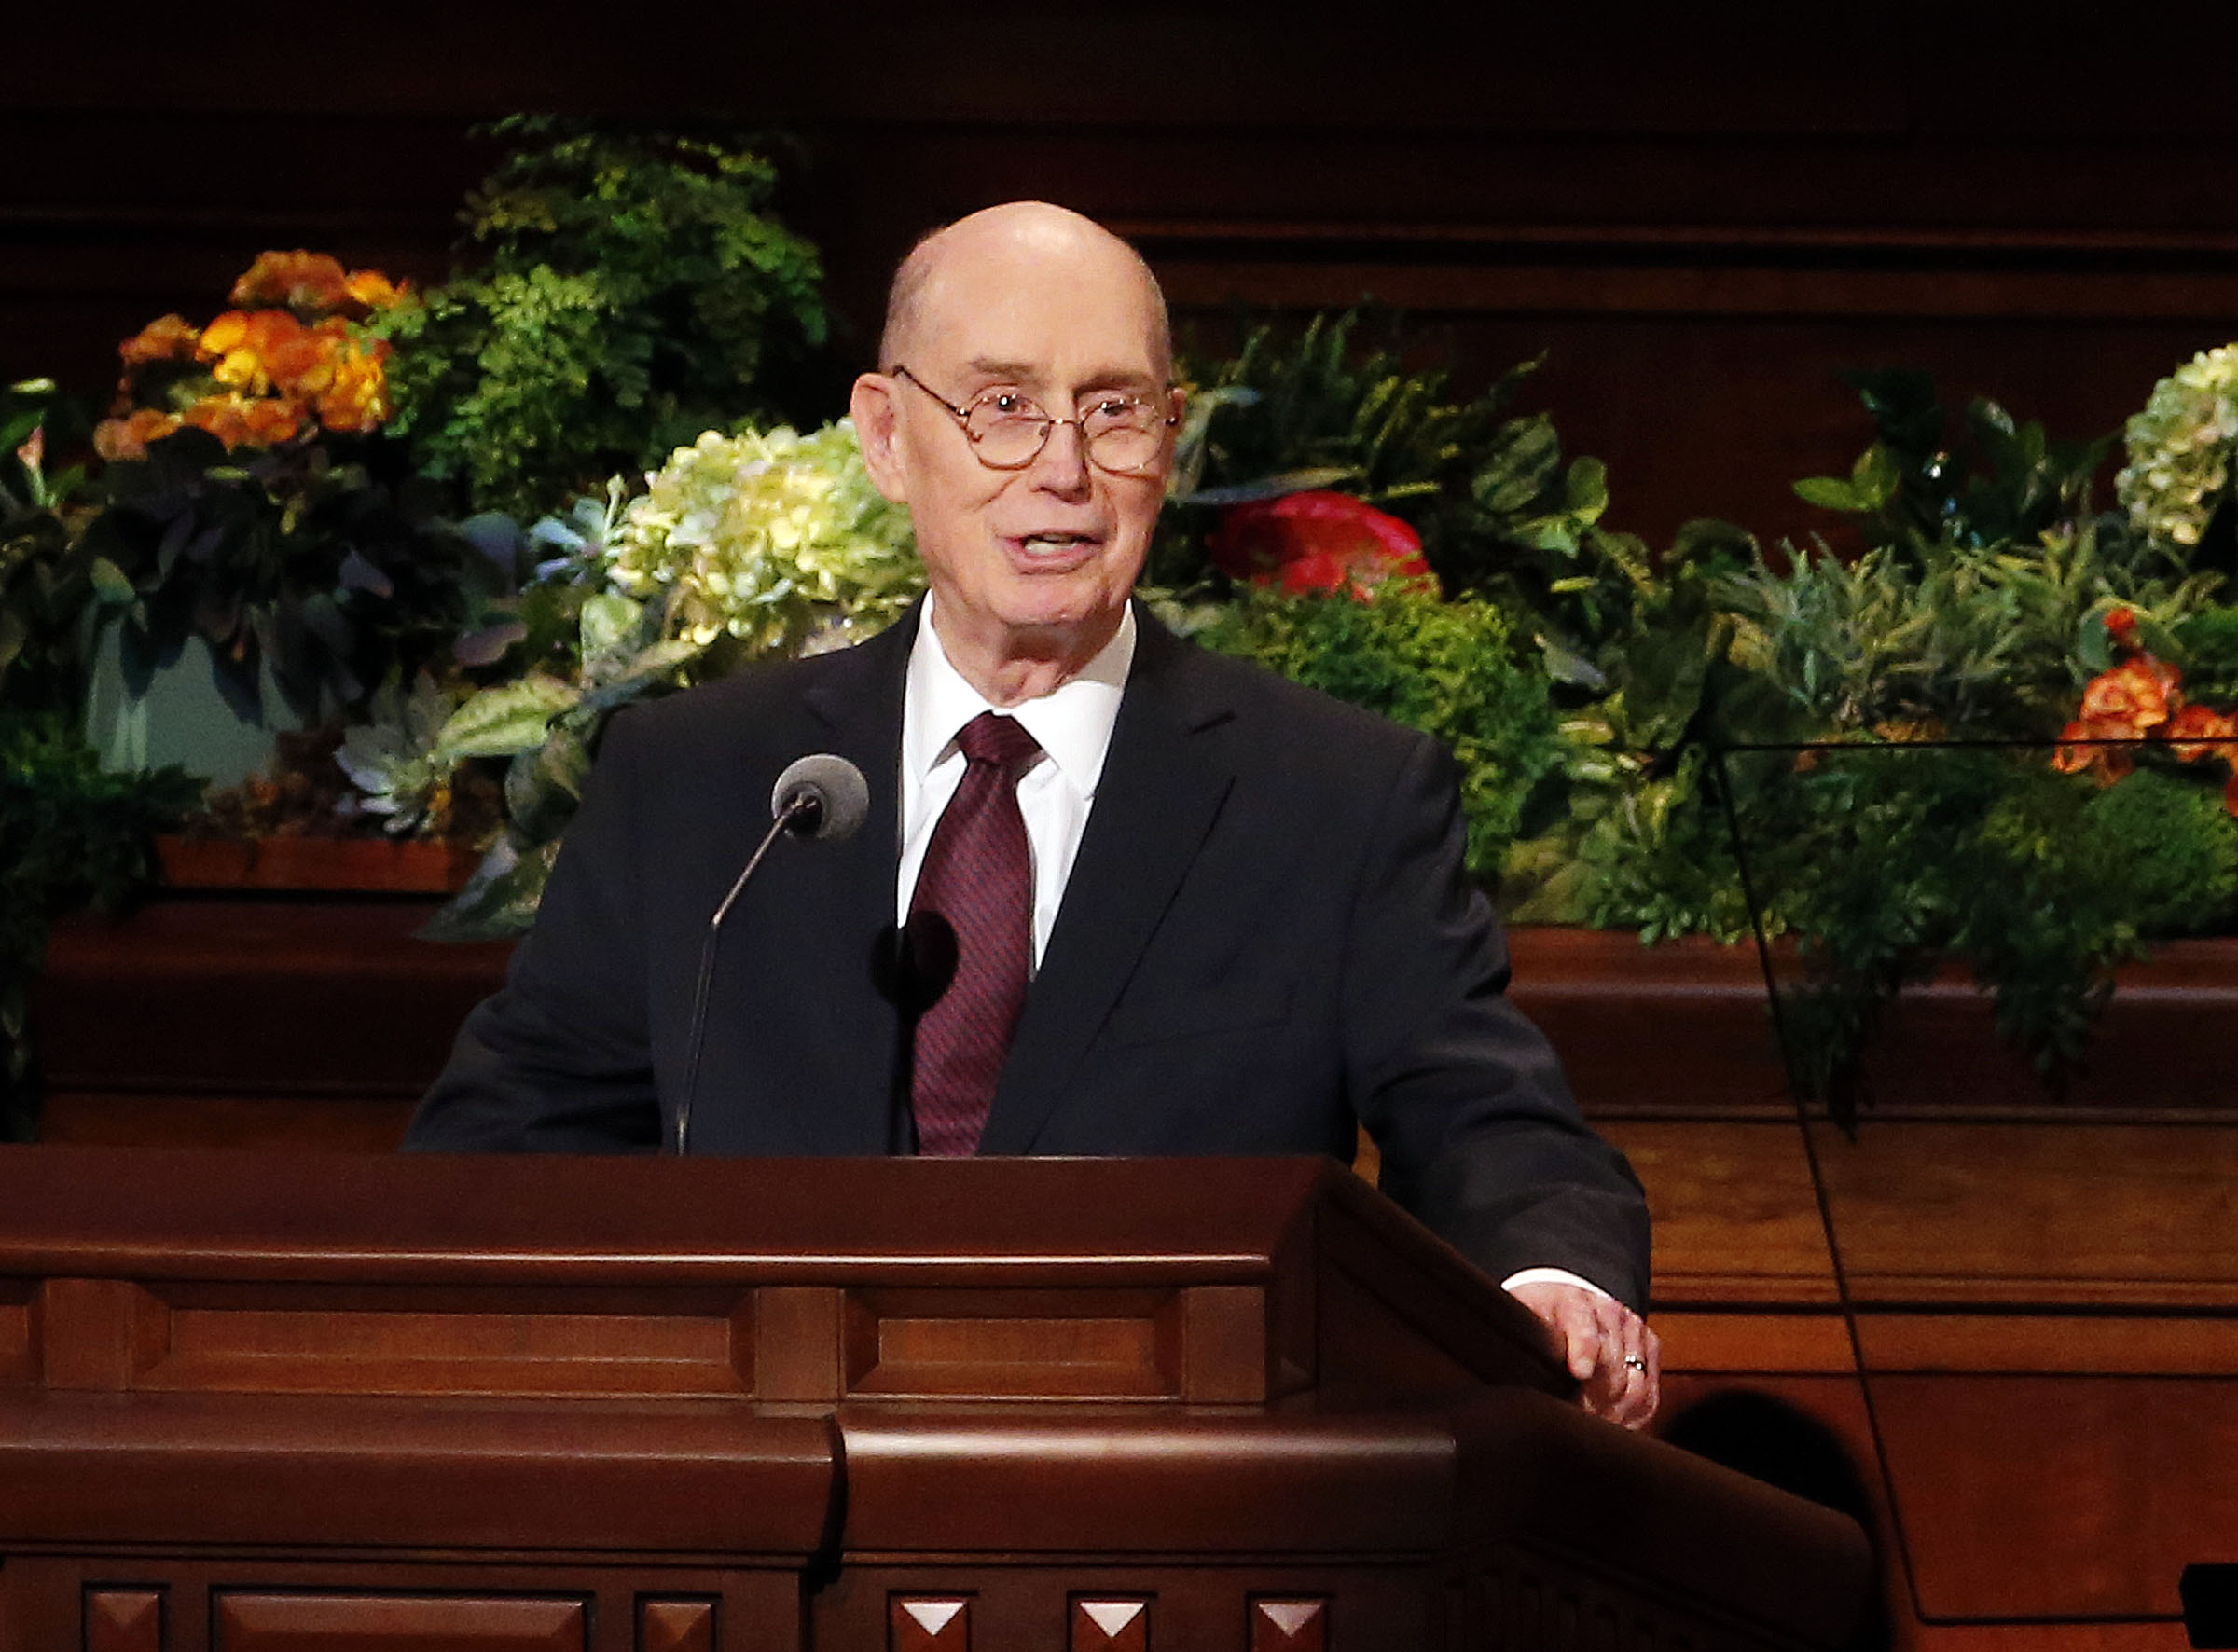 President Henry B. Eyring, second counselor in the First Presidency of The Church of Jesus Christ of Latter-day Saints, speaks during the priesthood session of the 189th Annual General Conference in the Conference Center in Salt Lake City on Saturday, April 6, 2019.